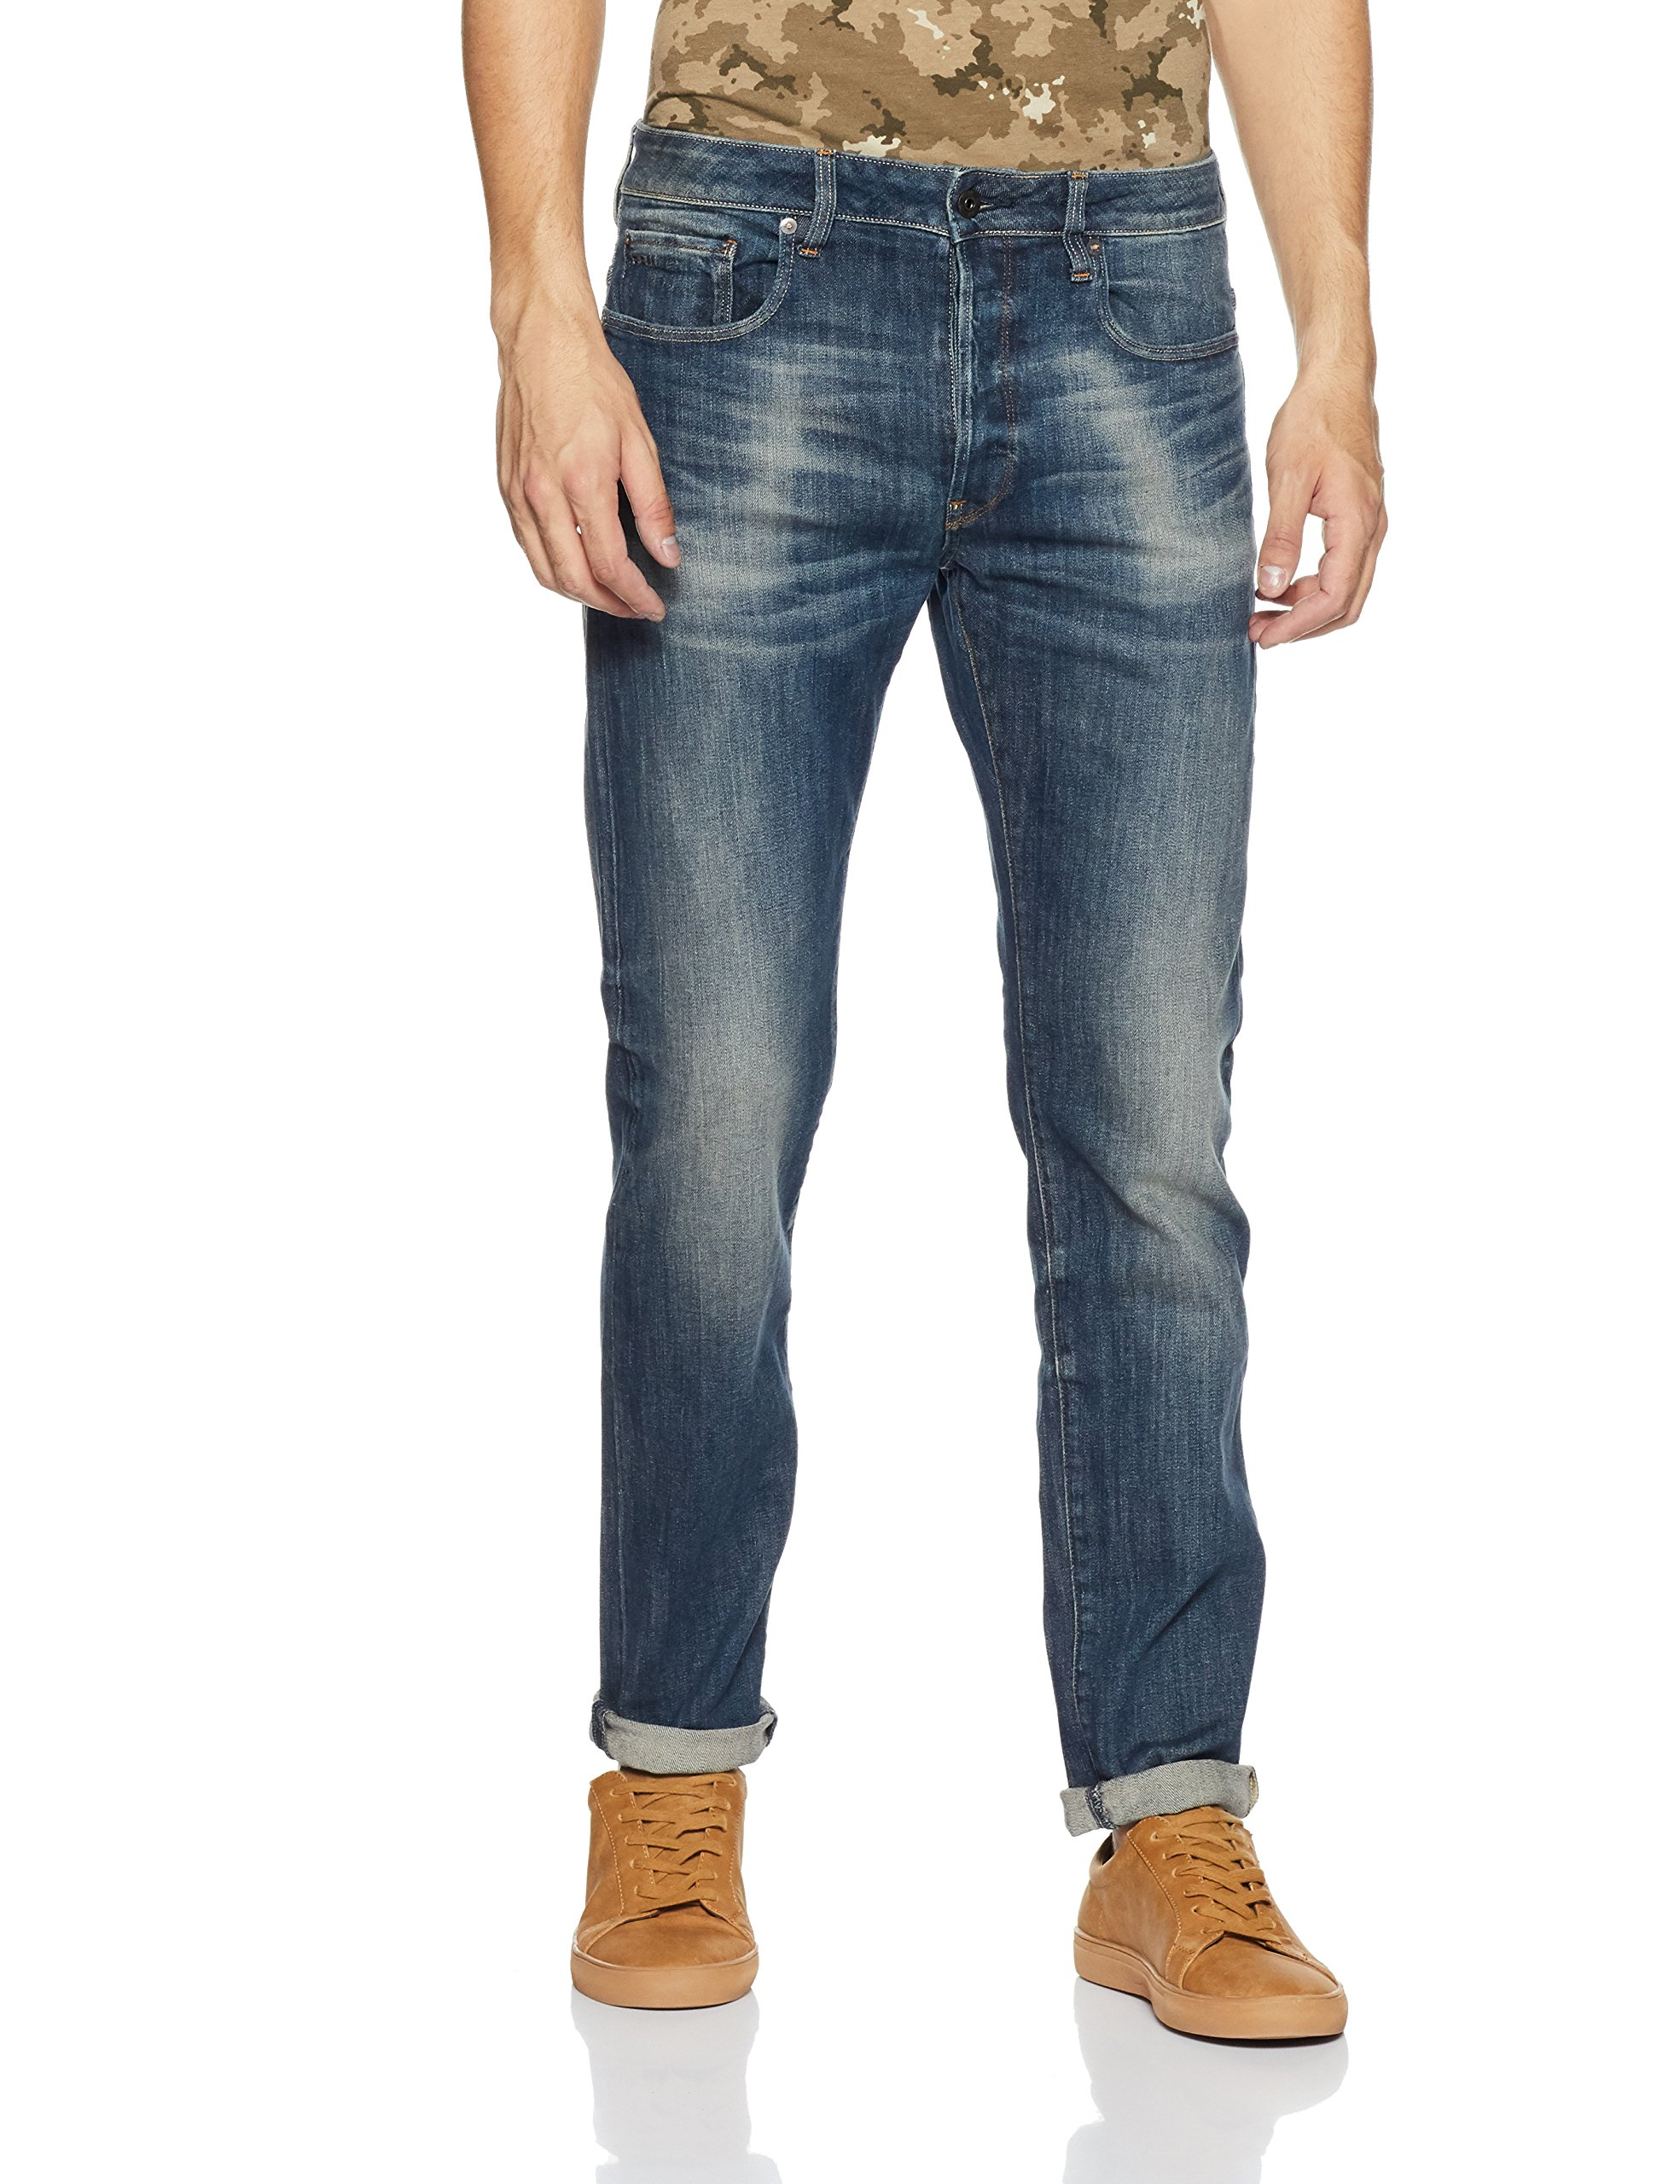 5543W32 3301Jeans Antic star Homme G l36 6566 Raw Slim l36taille Bleudk Aged FabricantW32 rdCxBhQtso